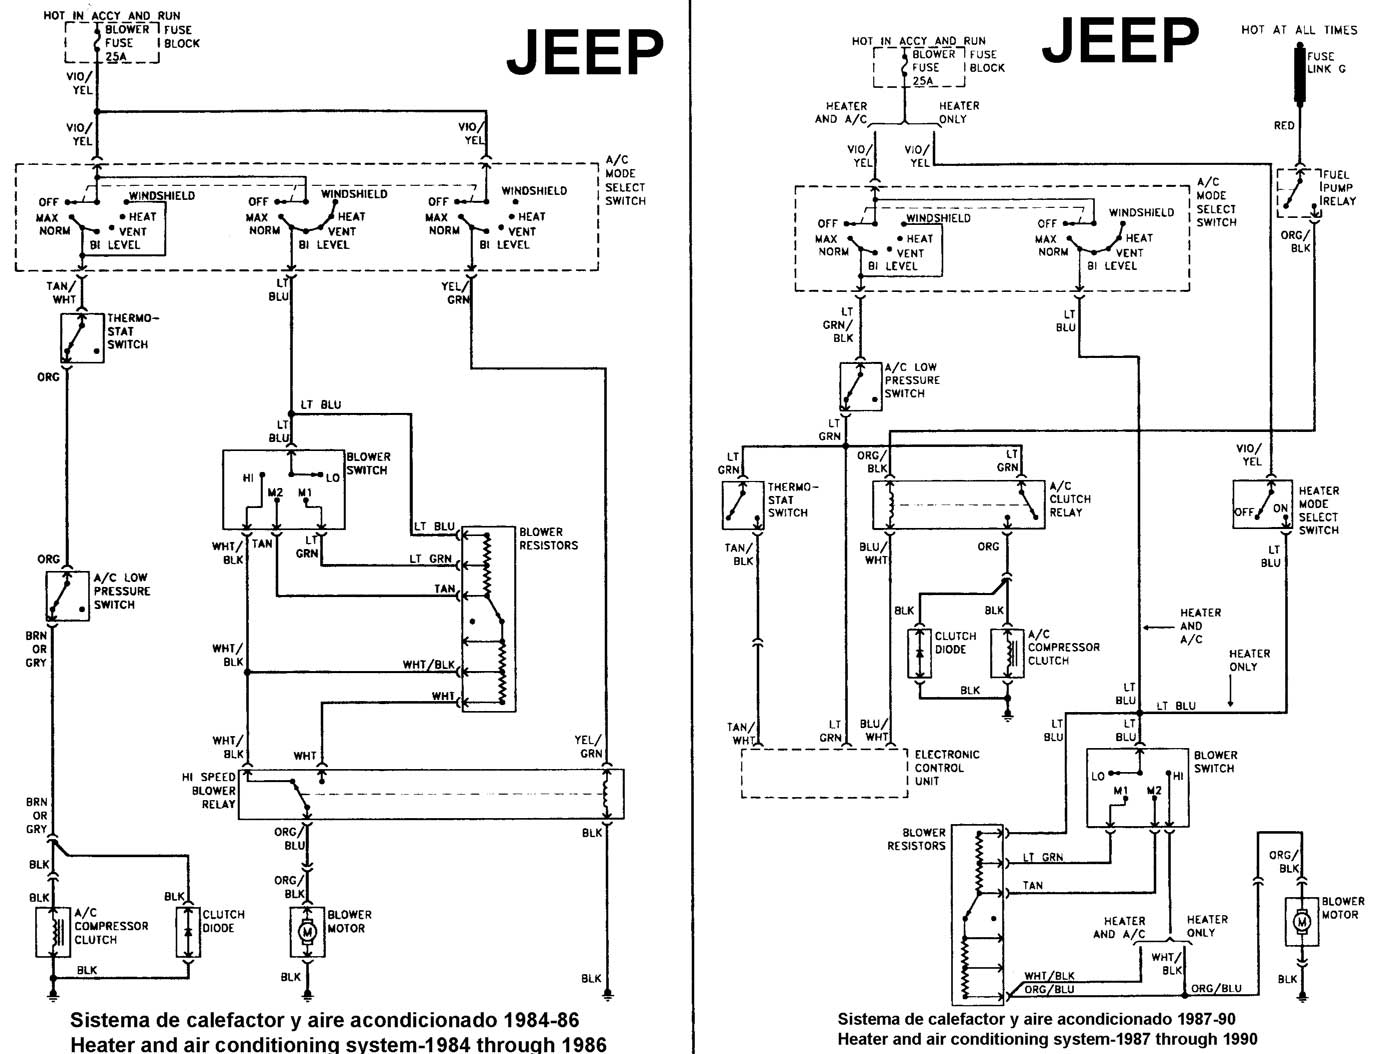 willys jeep wiring diagram warn winch contactor jeepster get free image